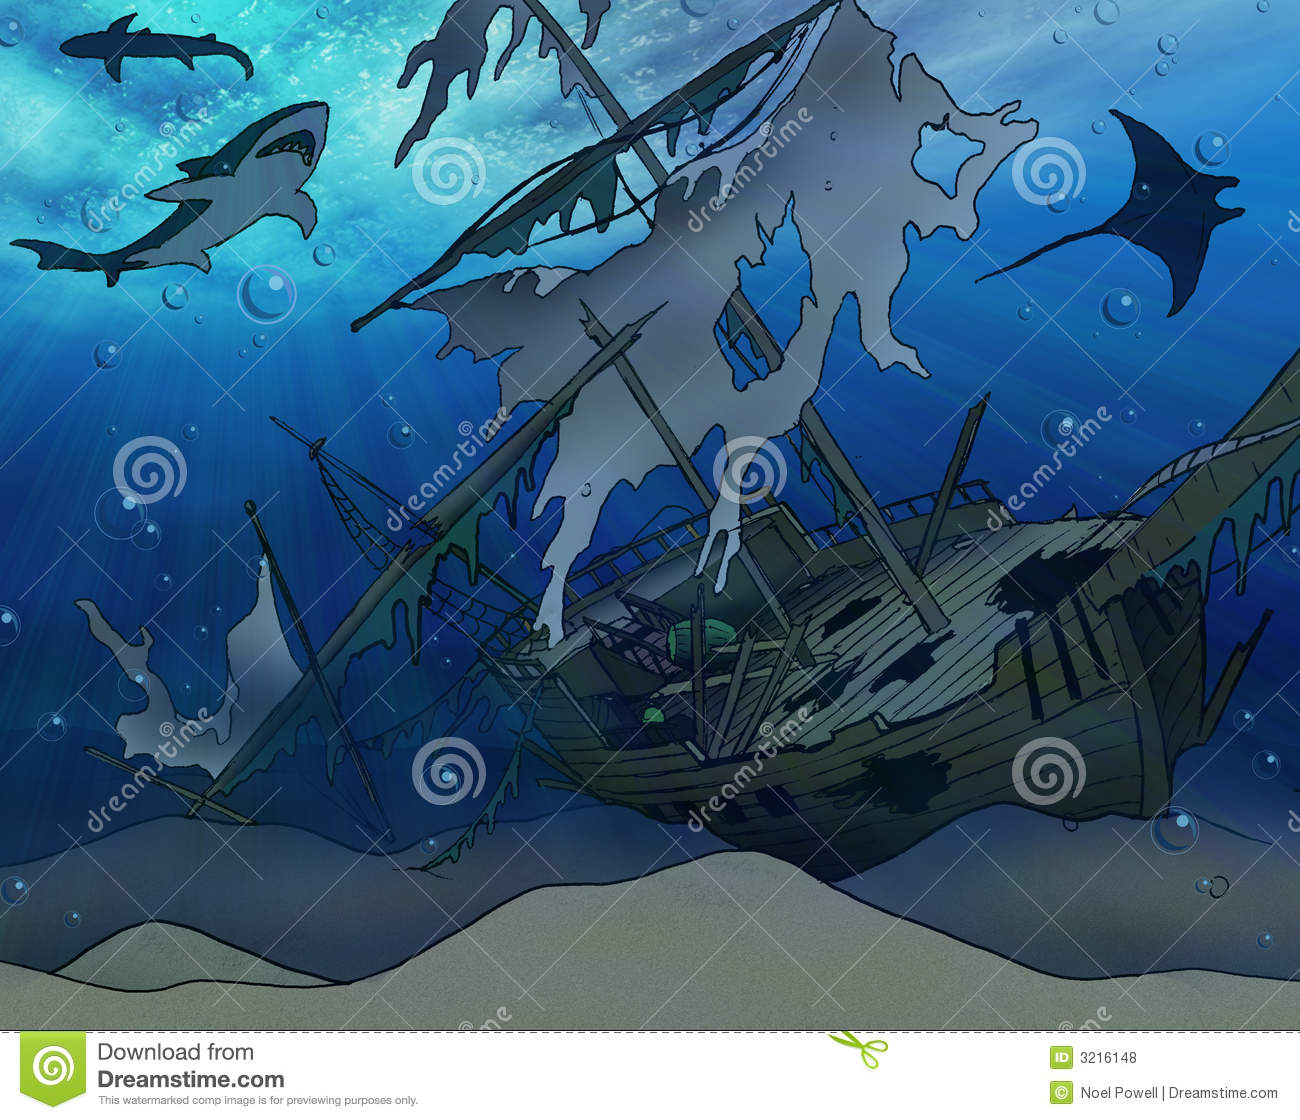 Shipwreck Illustration Royalty Free Stock Photos - Image: 3216148